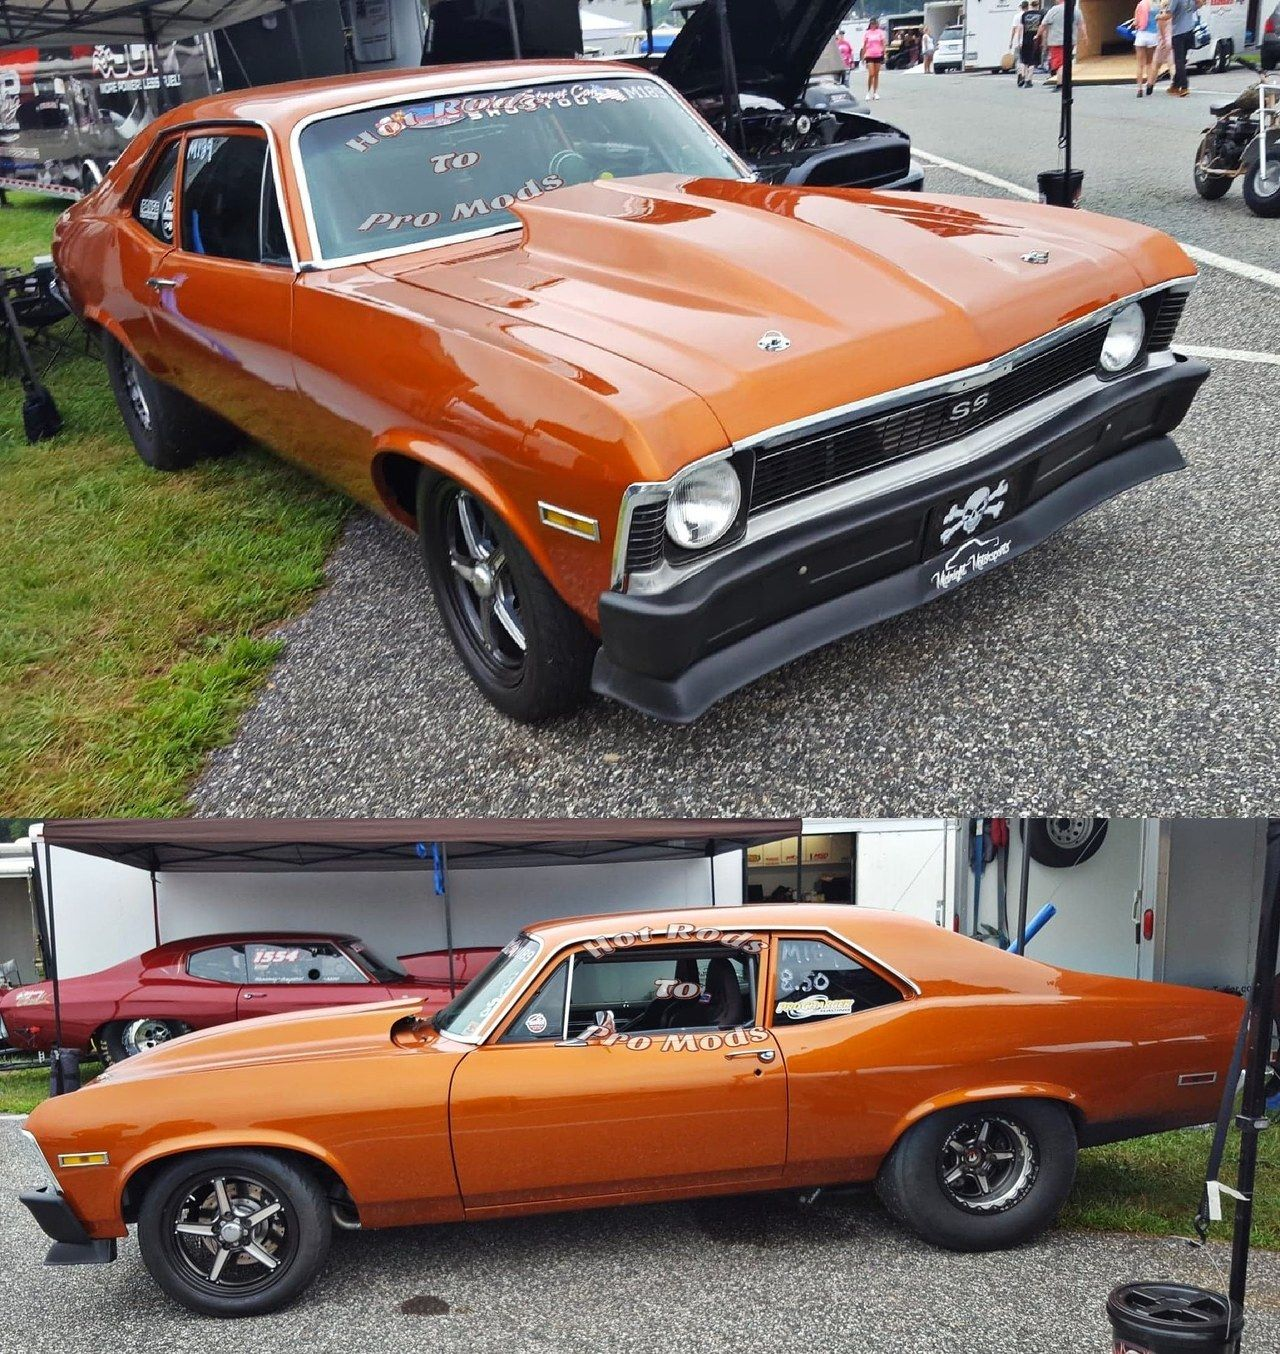 Chevy Nova Chevy Muscle Cars Custom Muscle Cars Chevy Nova